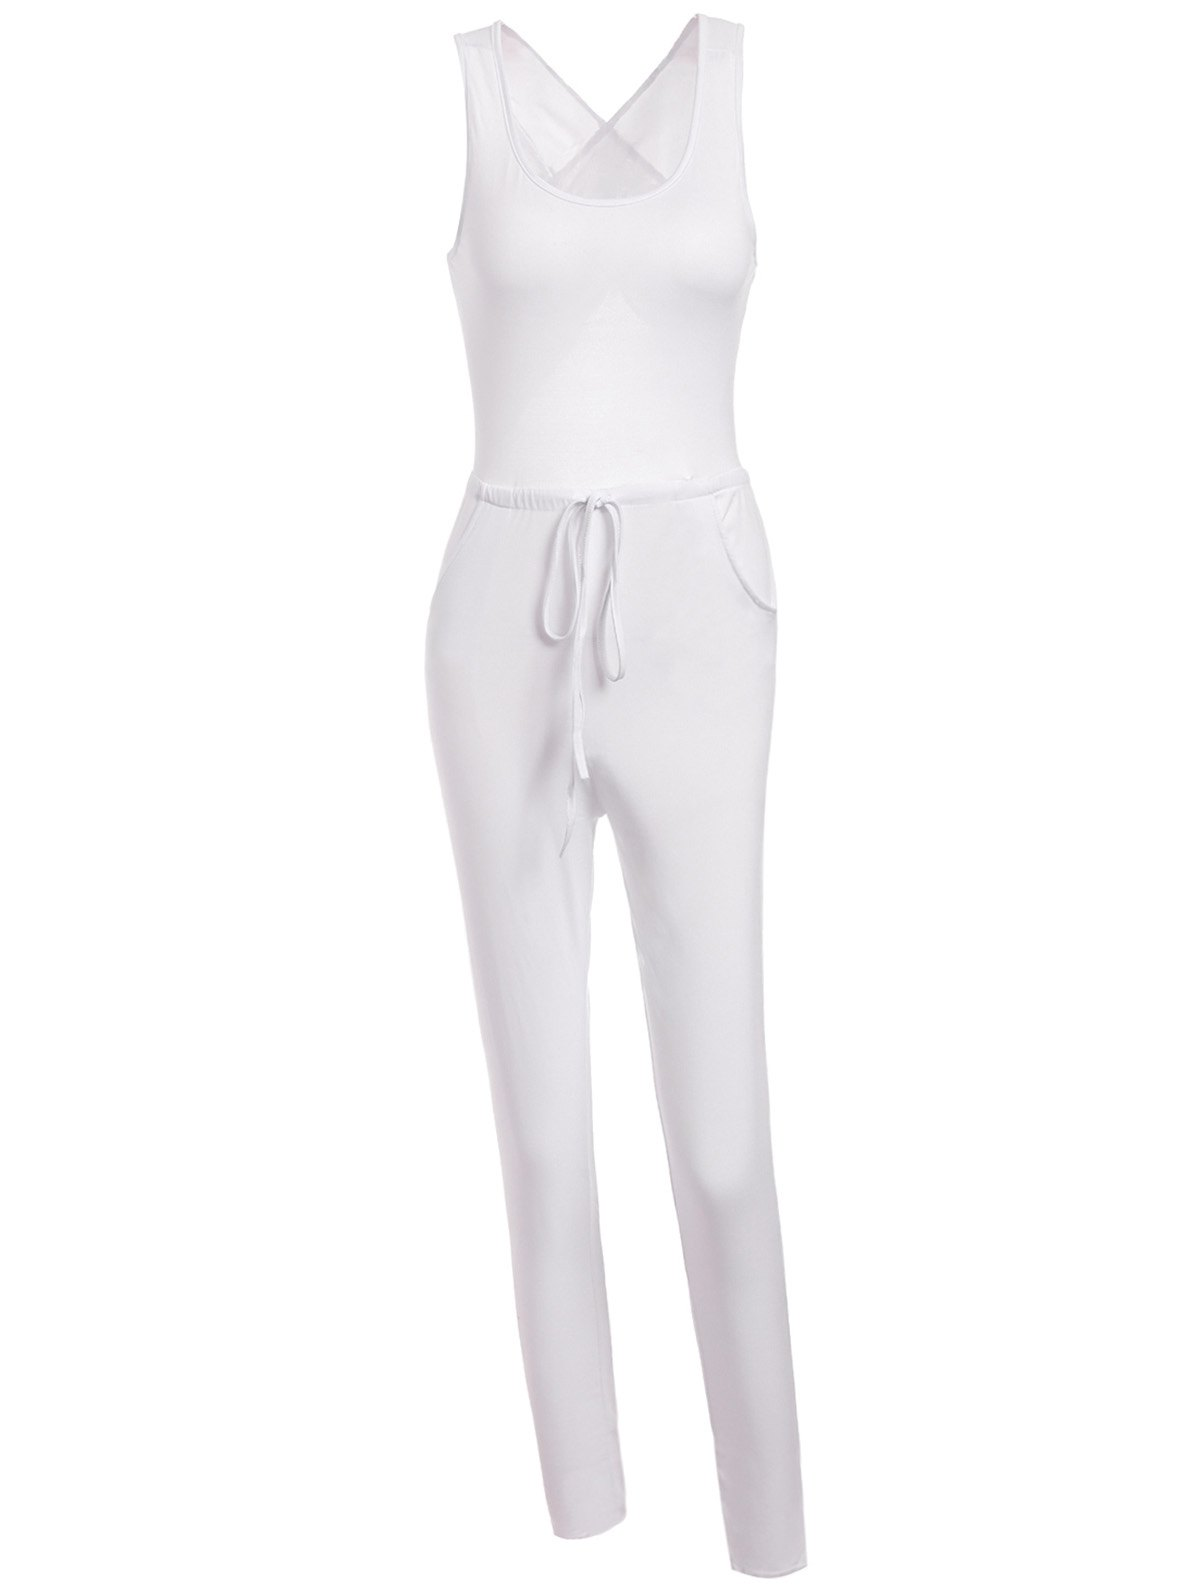 Stylish Scoop Neck Sleeveless Drawstring Hollow Out Women's Jumpsuit